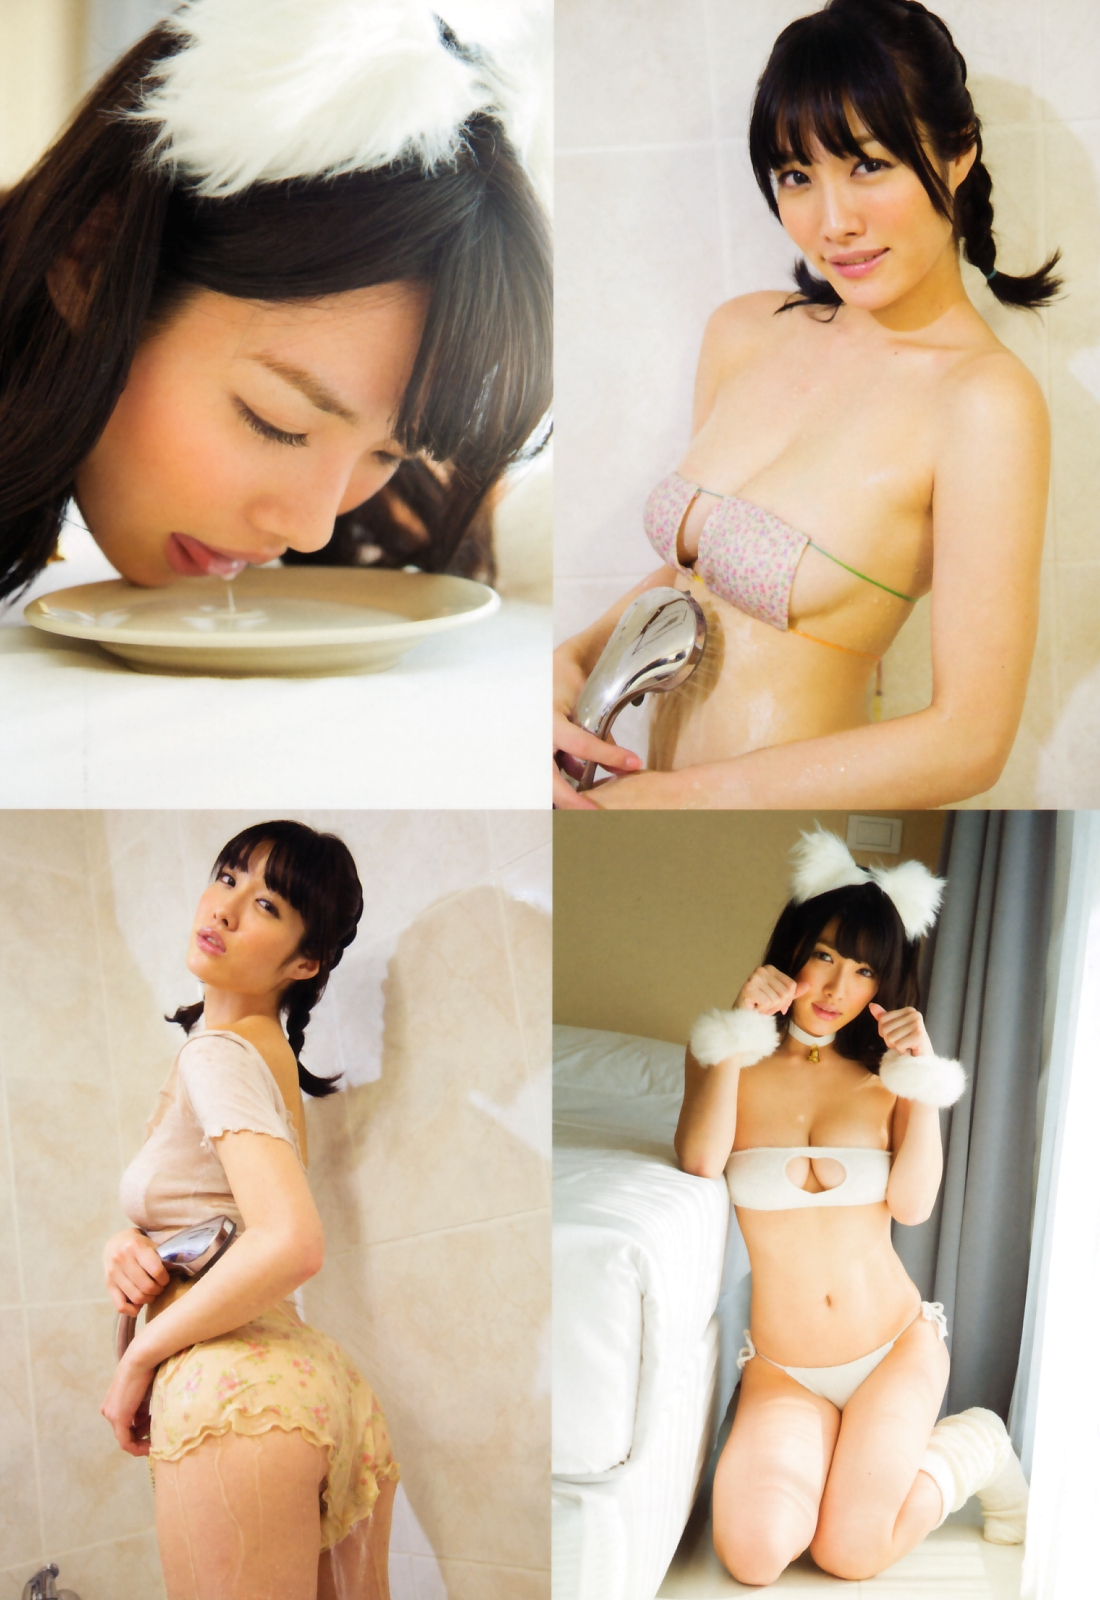 Its soft and makes you want to touch it Anna Konno 069